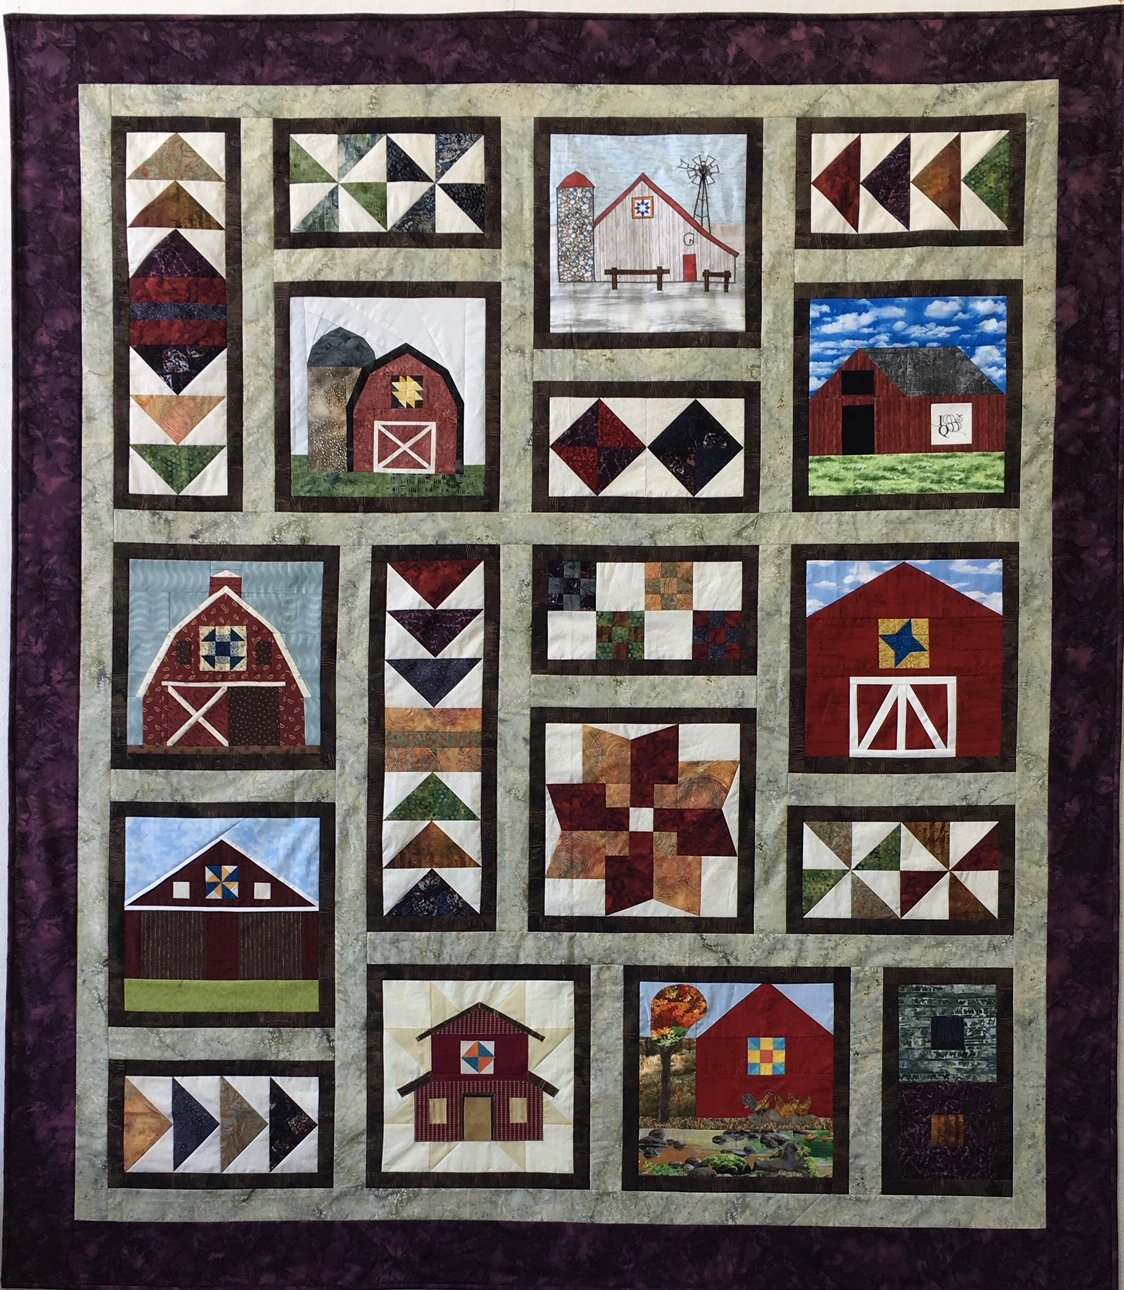 ACME's Barn Quilt - Fabric + Pattern